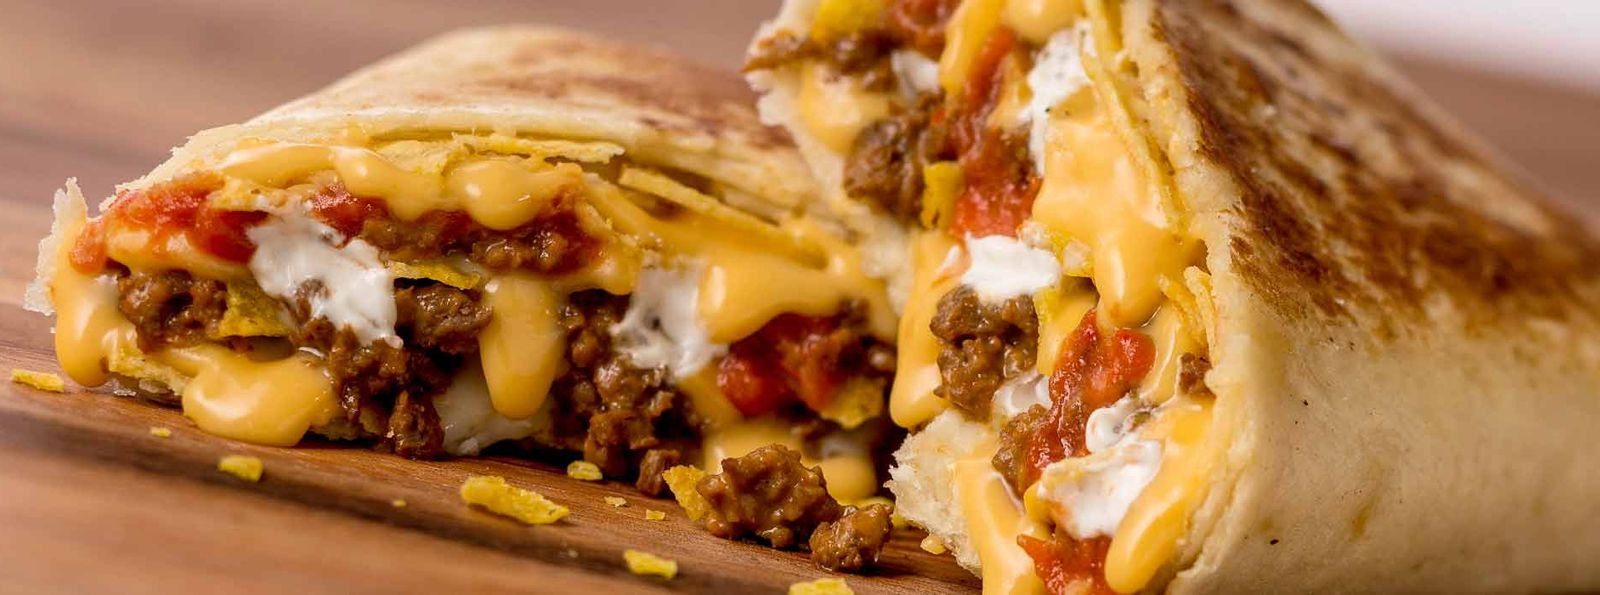 Celebrate National Taco (John's) Day with Free Beef Stuffed Grilled Tacos